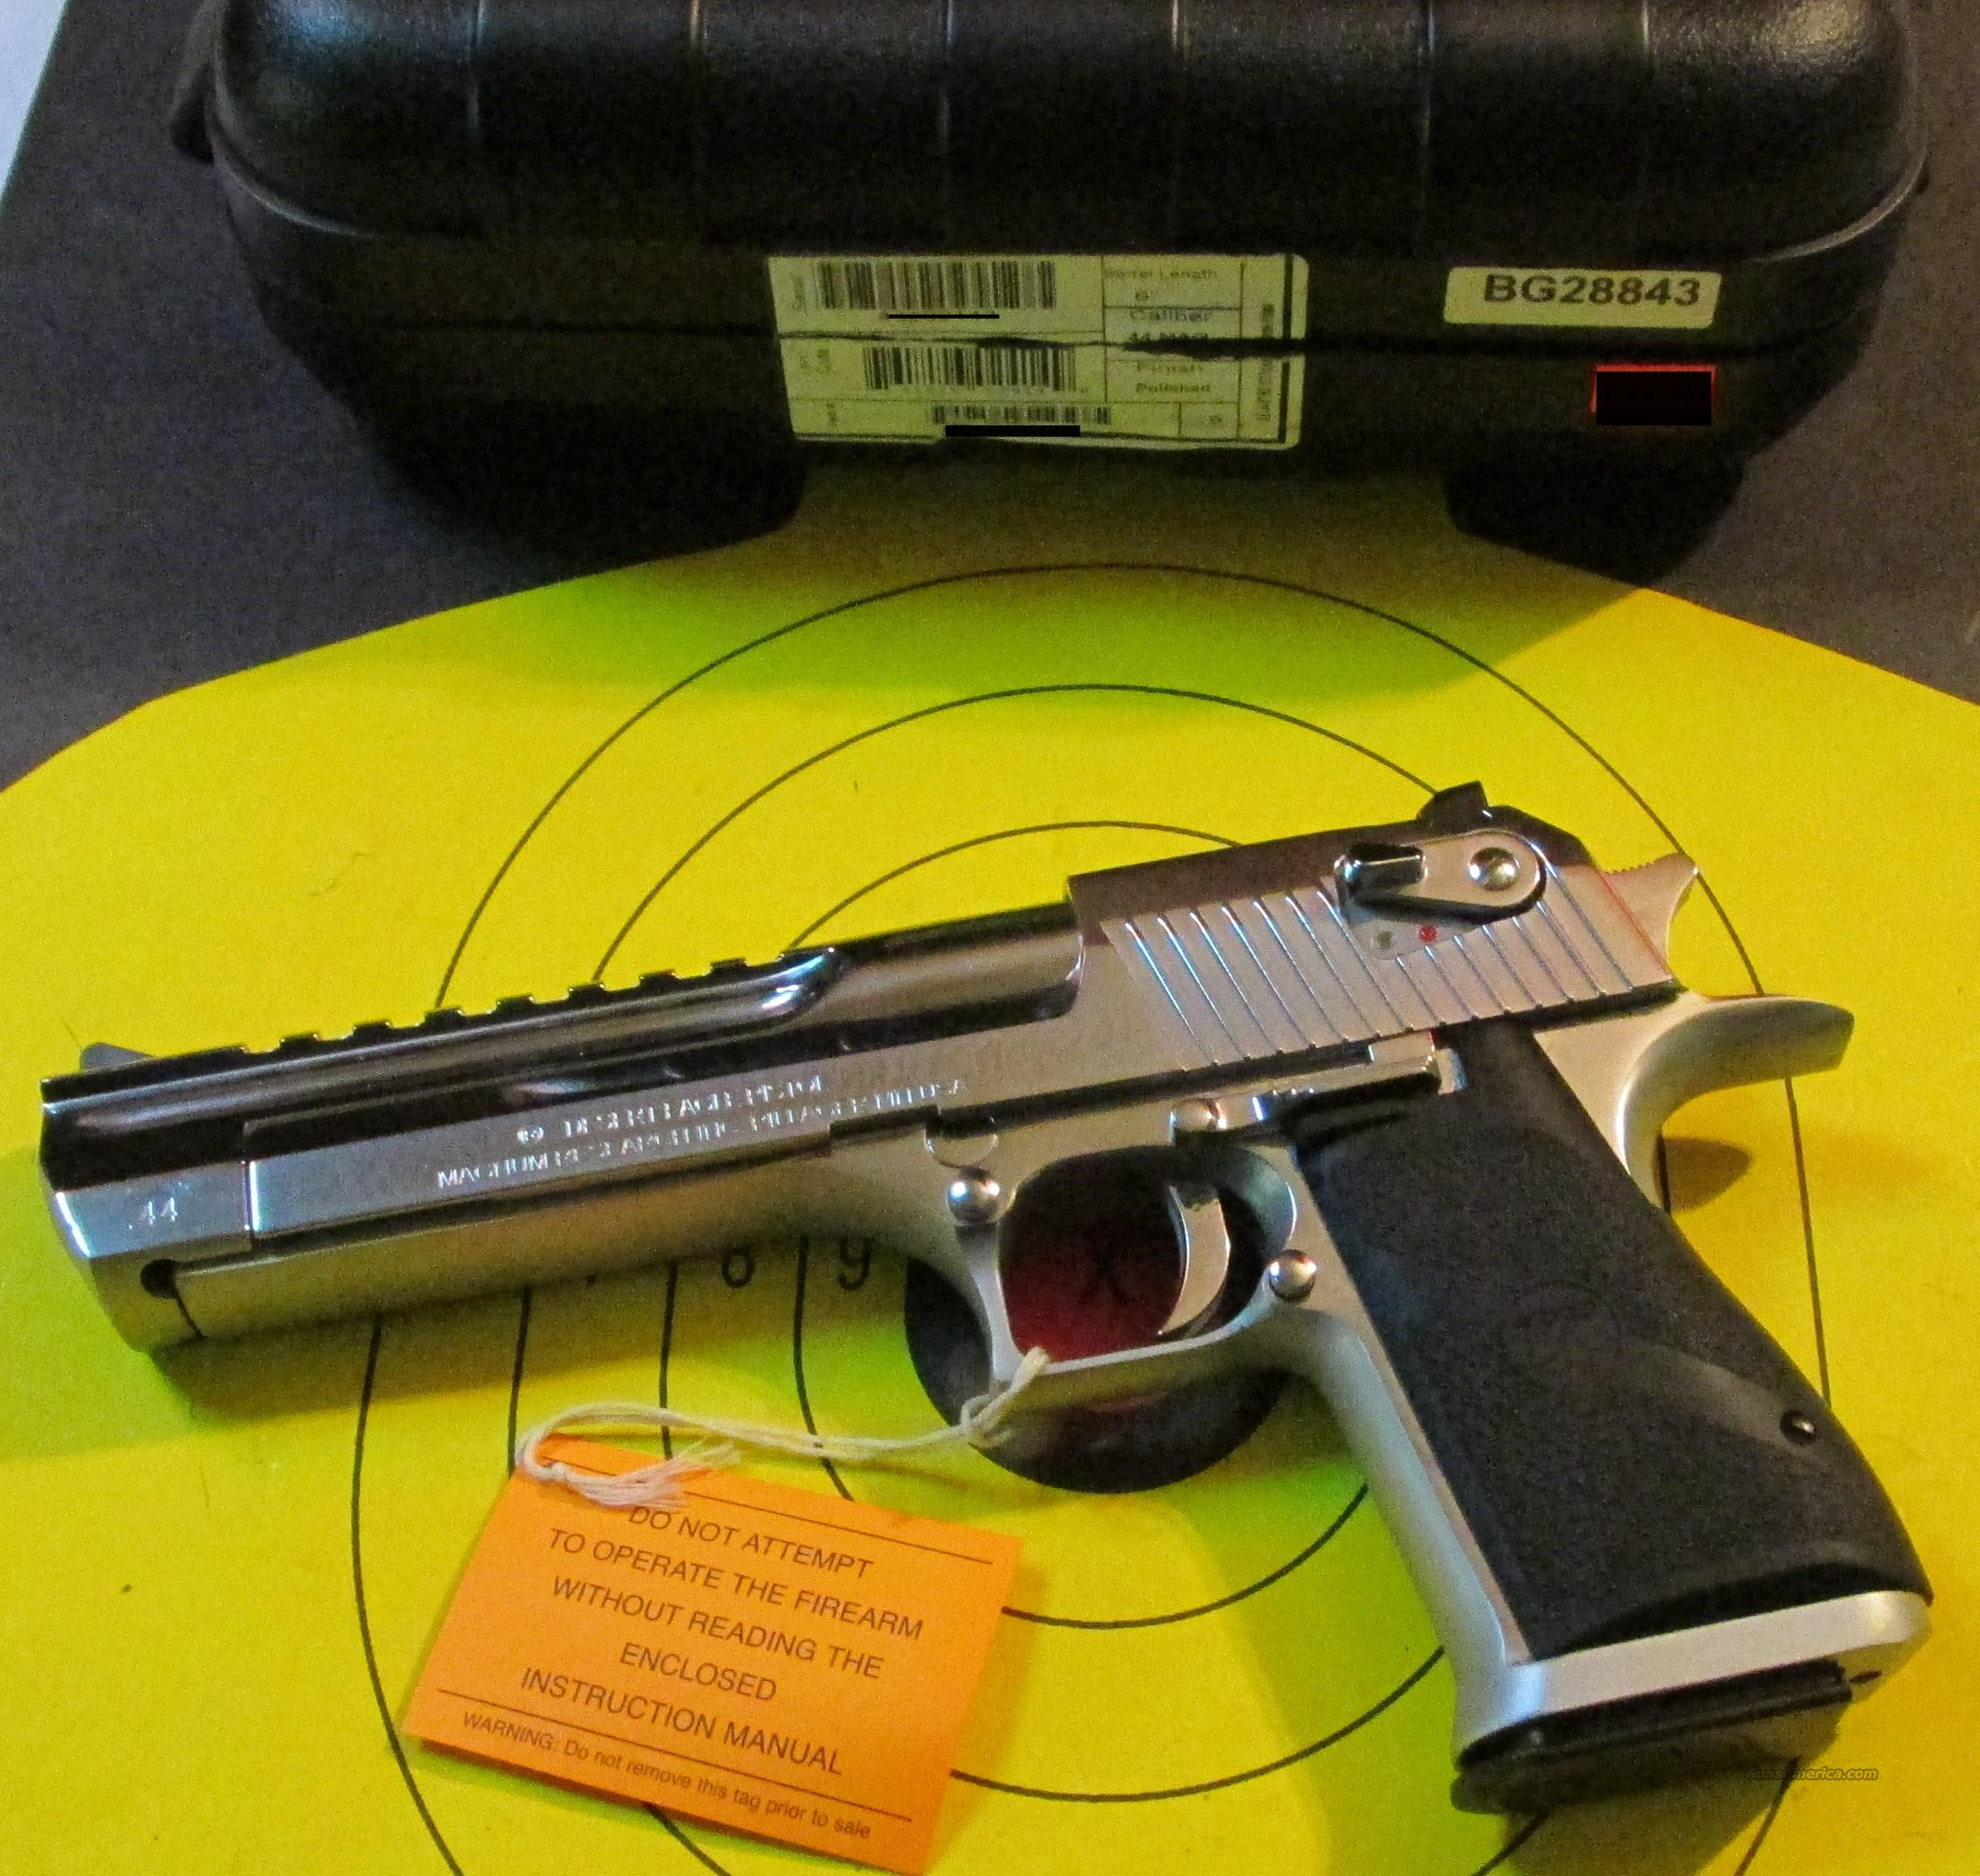 MAGNUM RESEARCH DESERT EAGLE 44 MAG POLISHED STAINLESS PISTOL  Guns > Pistols > Magnum Research Pistols